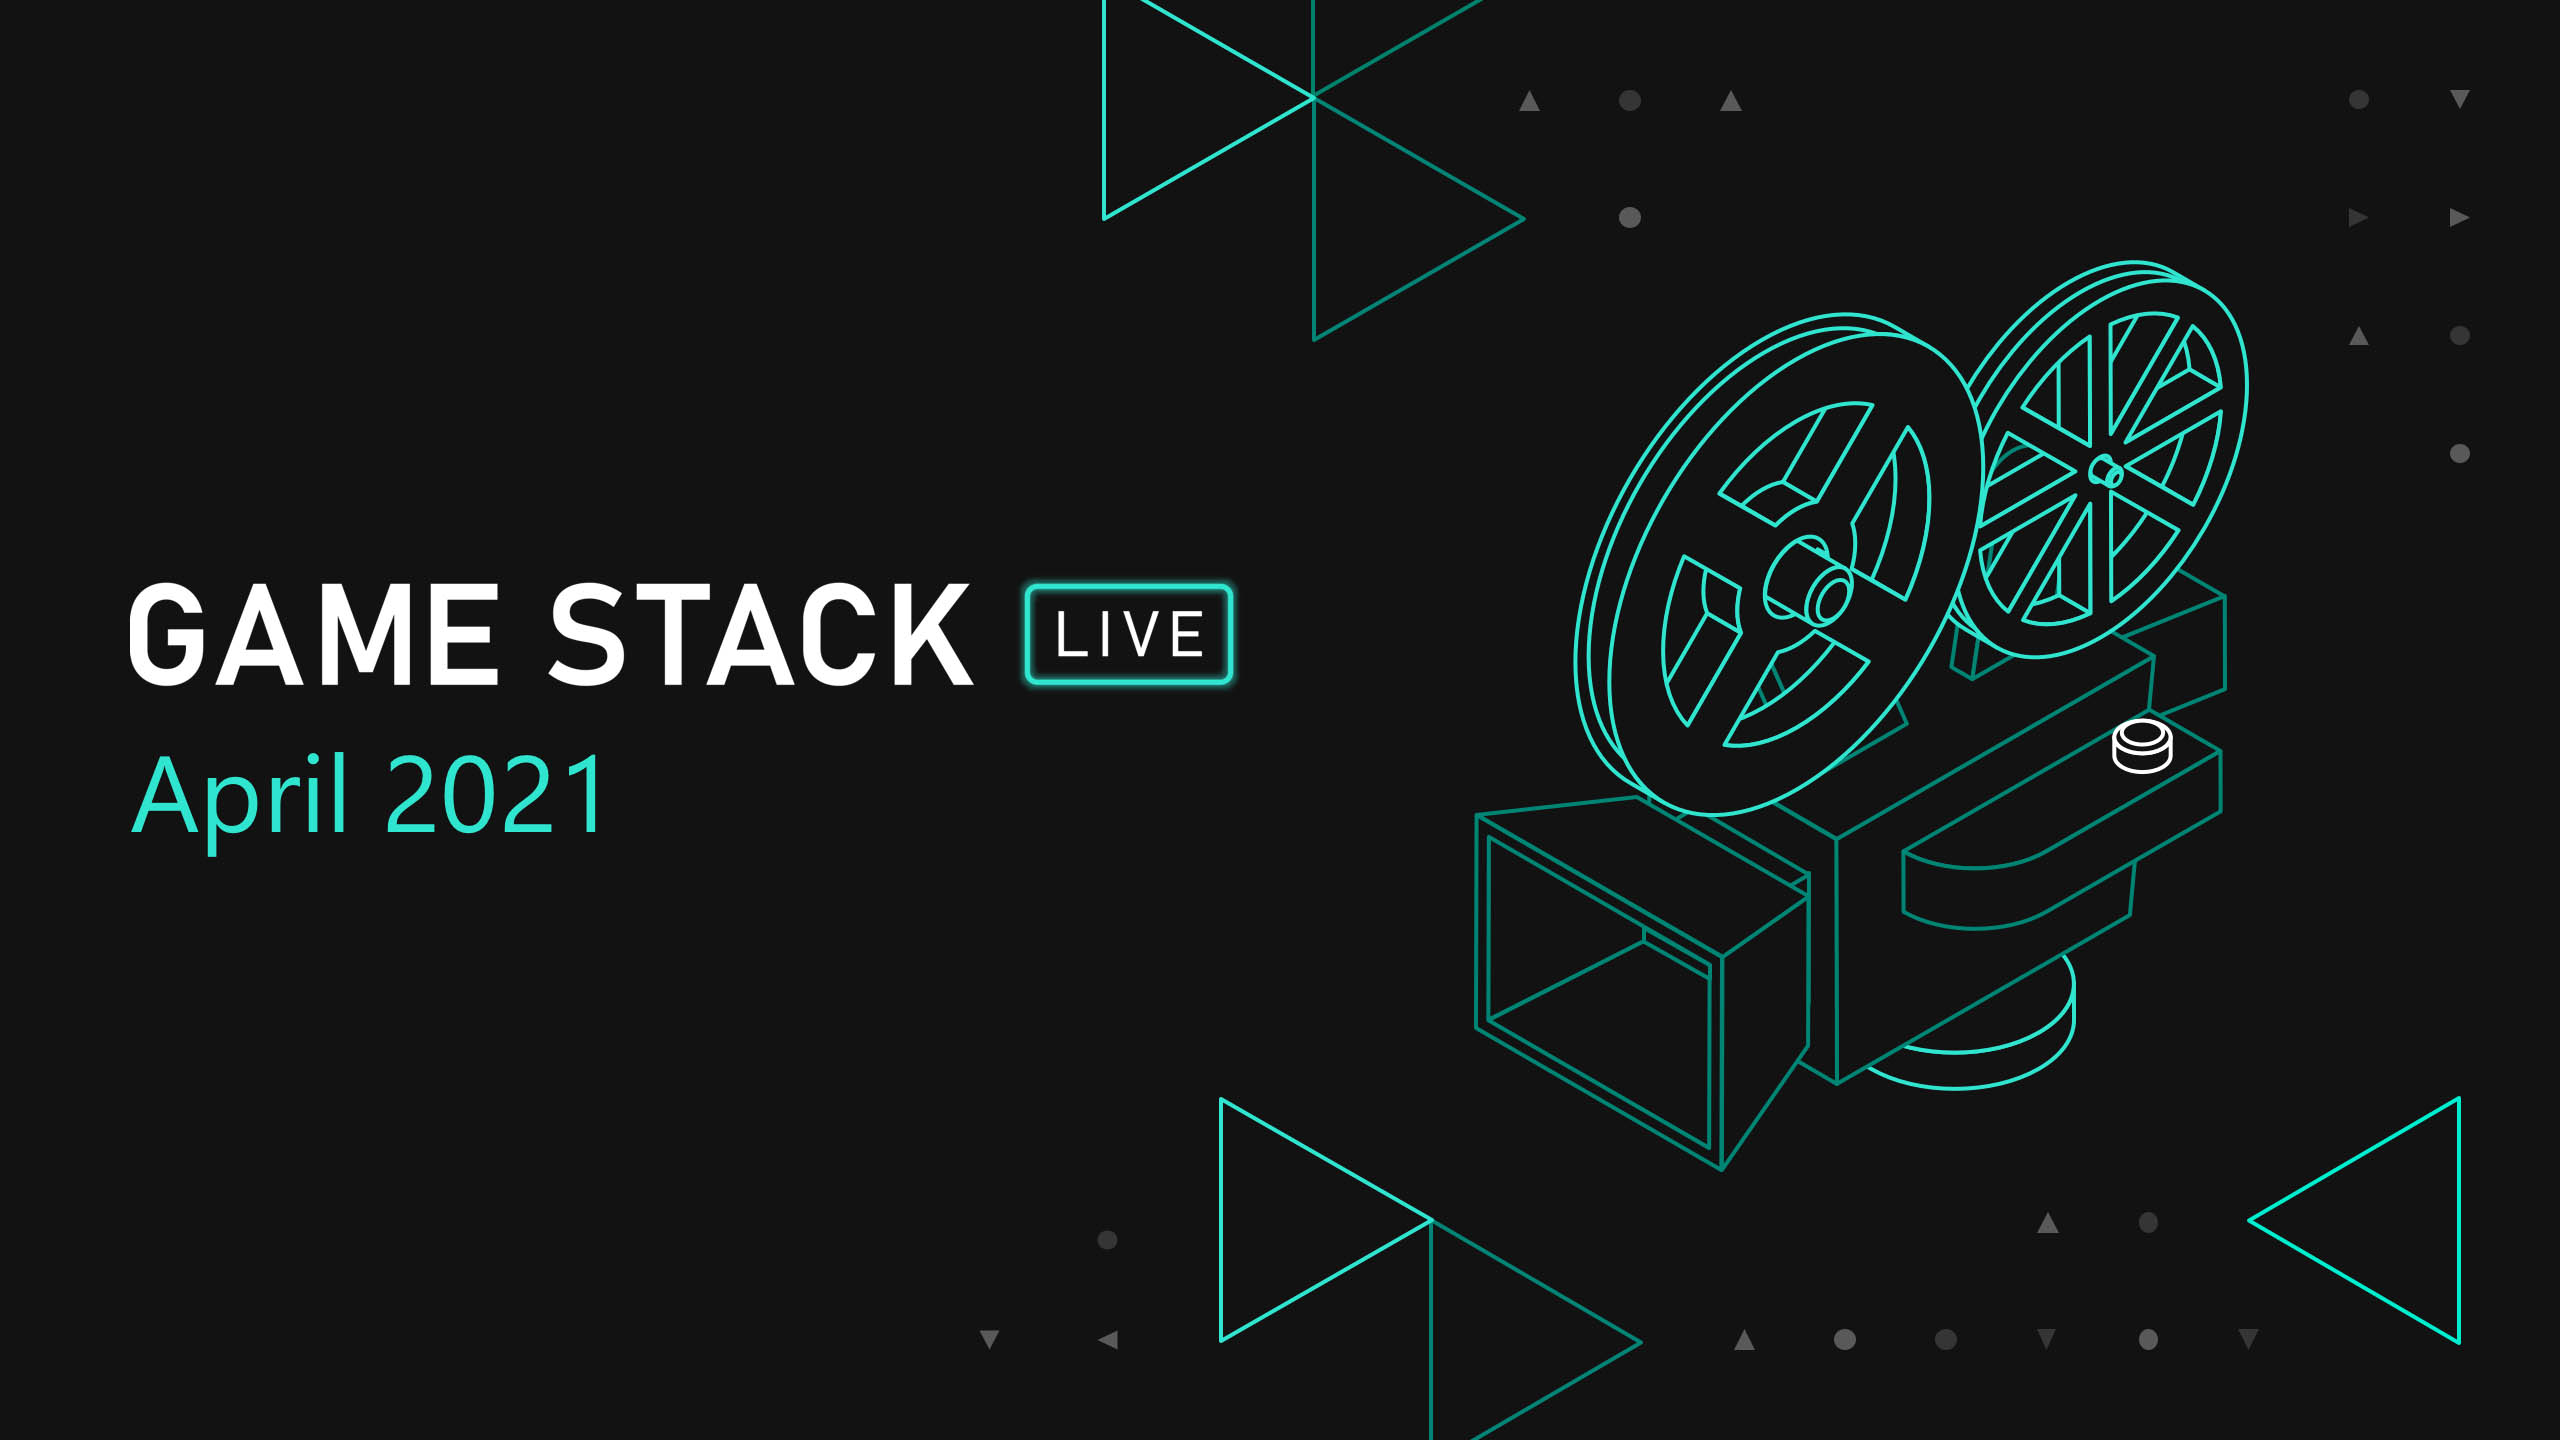 Game Stack Live, April 2021